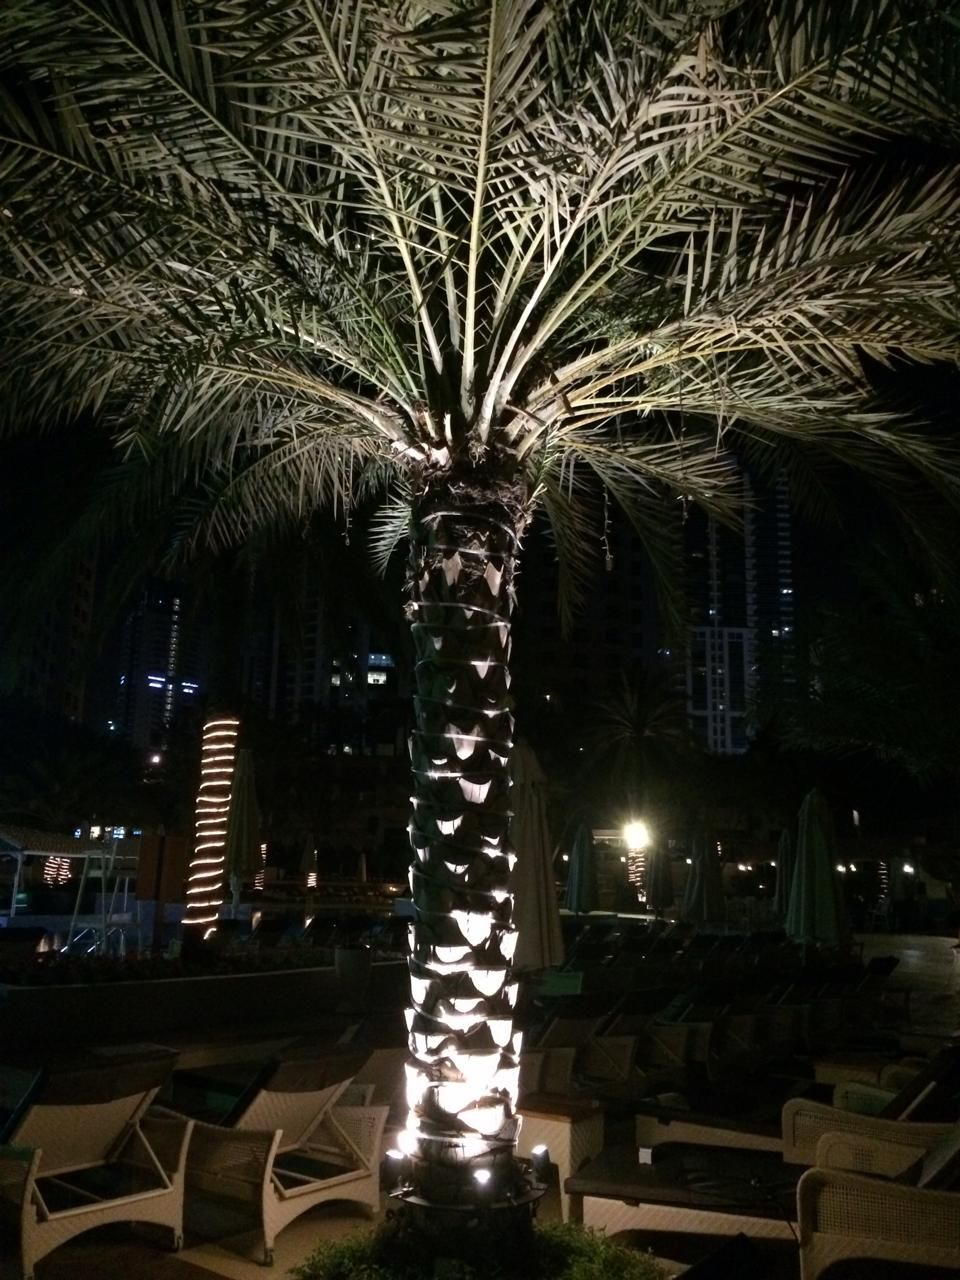 This Is Effective Way To Light Up A Palm Tree With Ring Uplighter Lumo Lumofze Dubai Garden Landscape